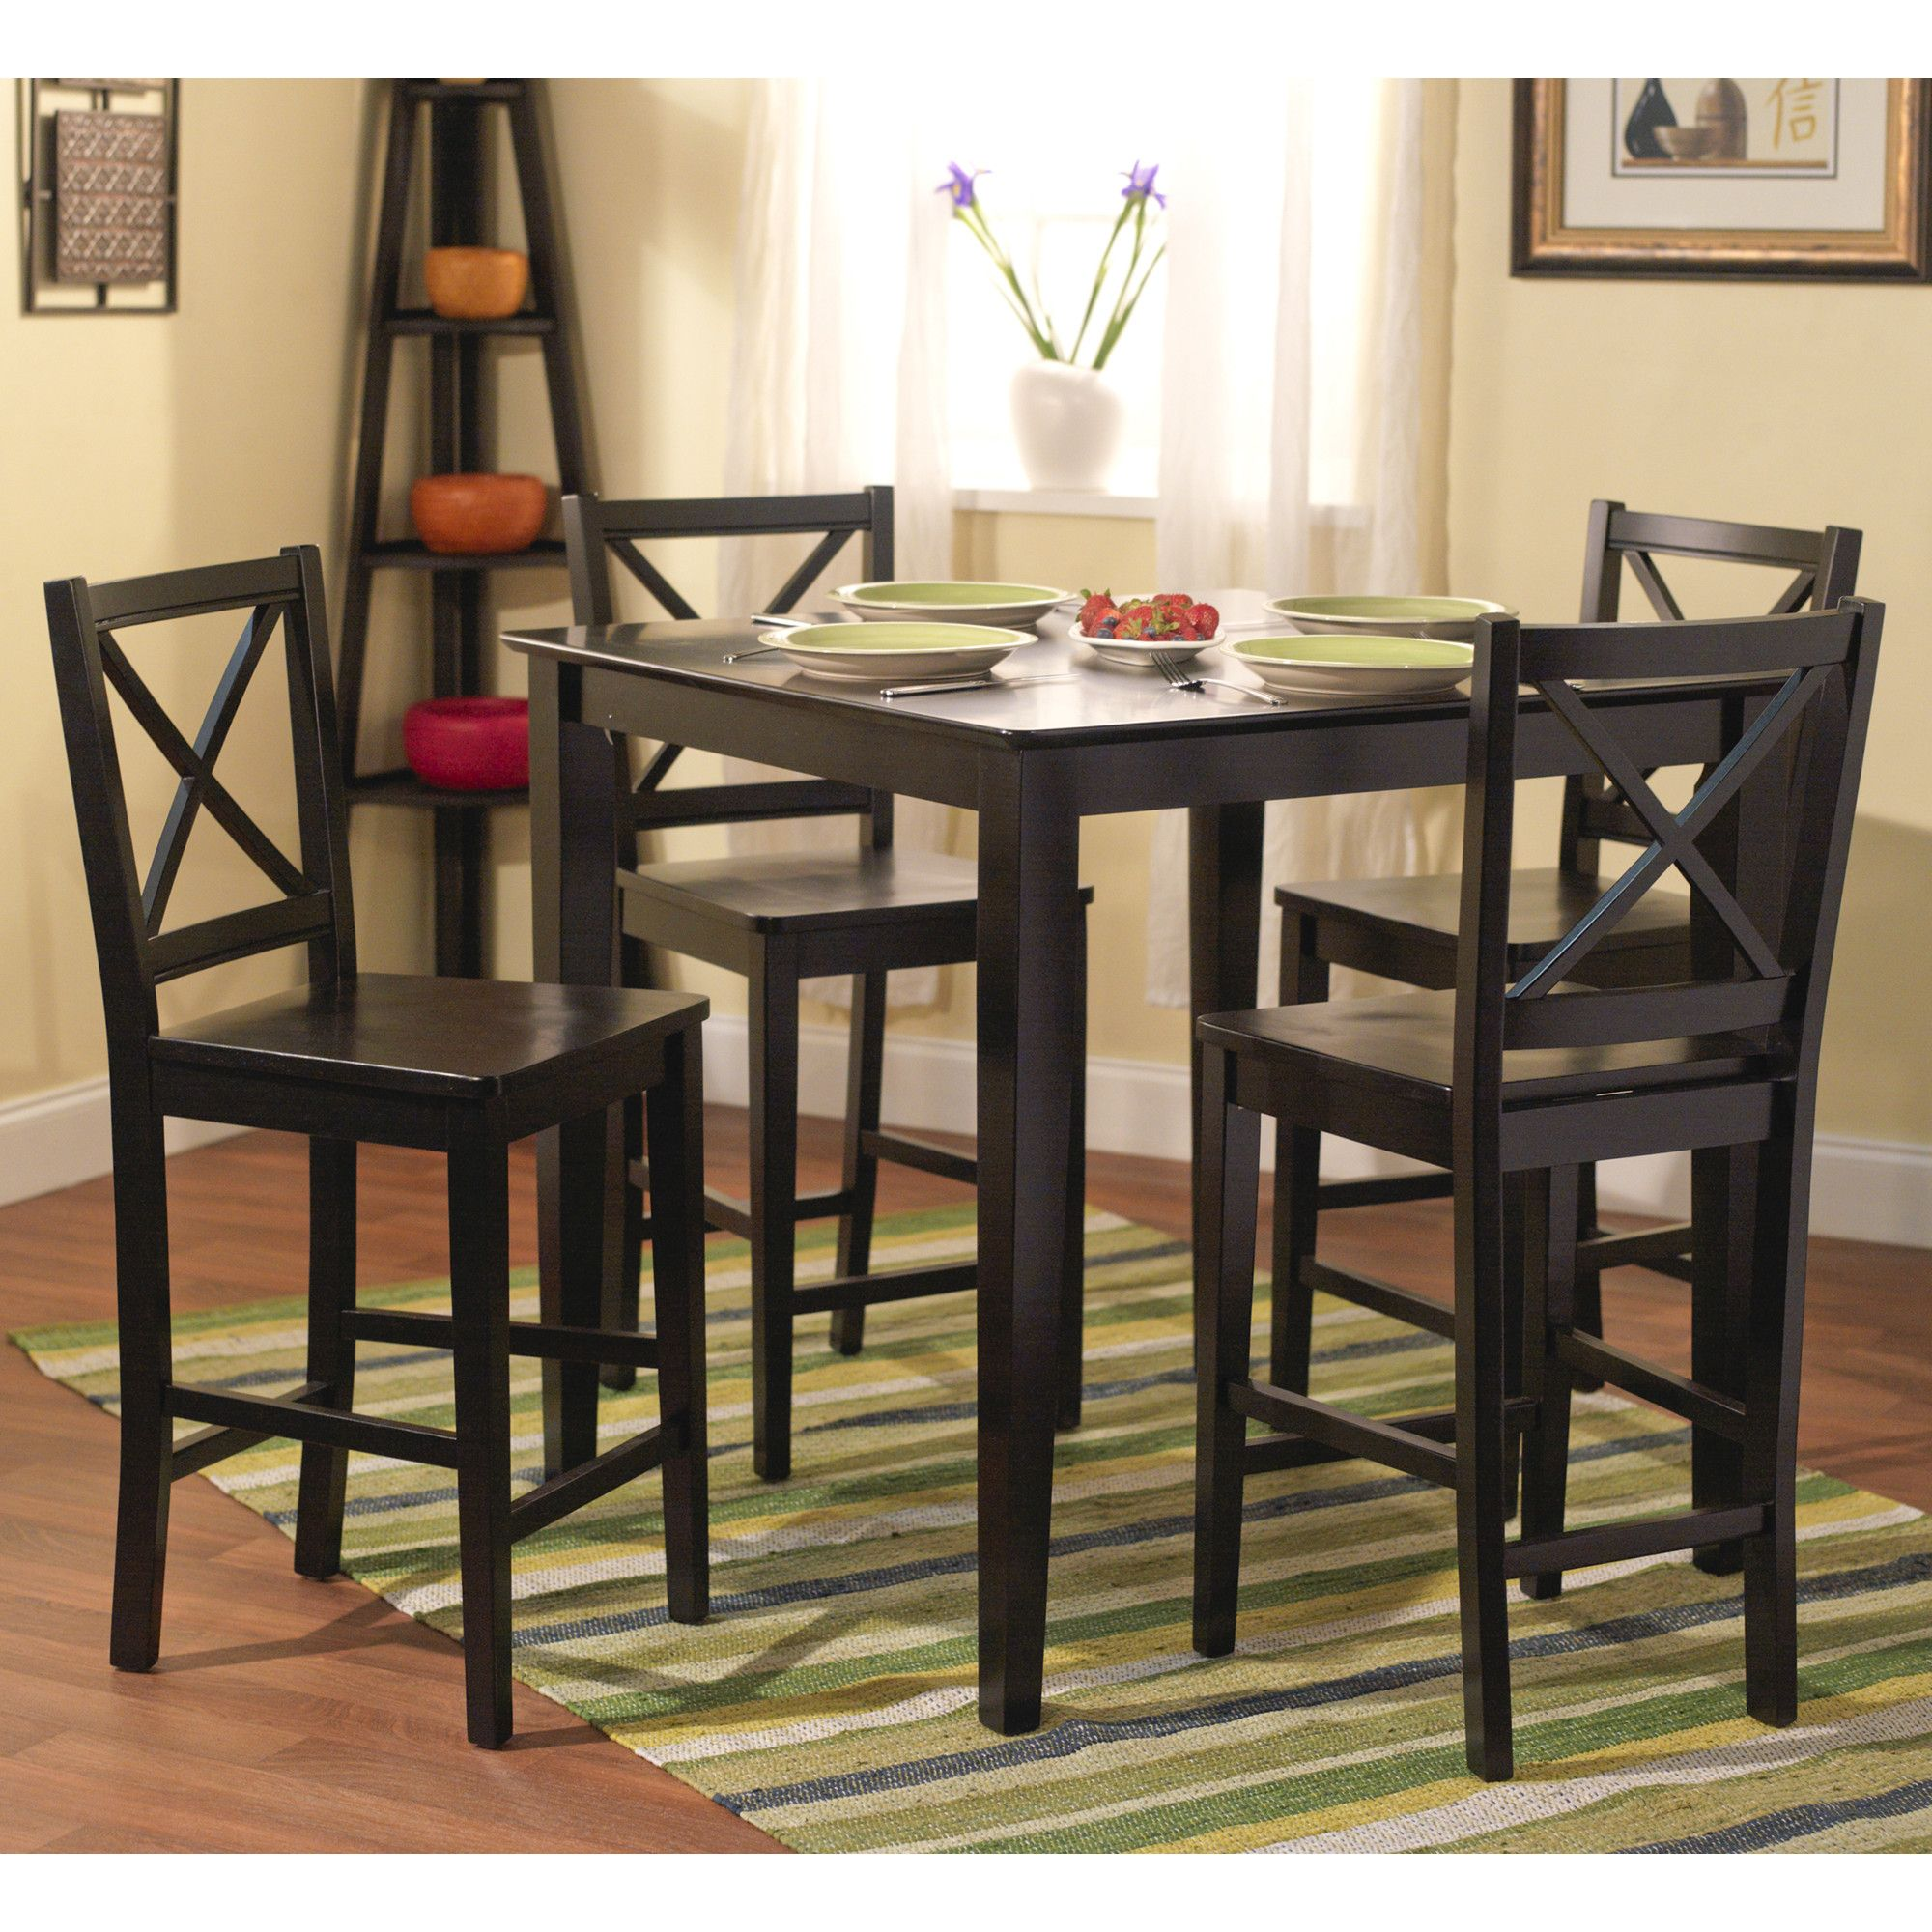 Modern Stylish Dining Room Table And Chairs Tall Dining Room